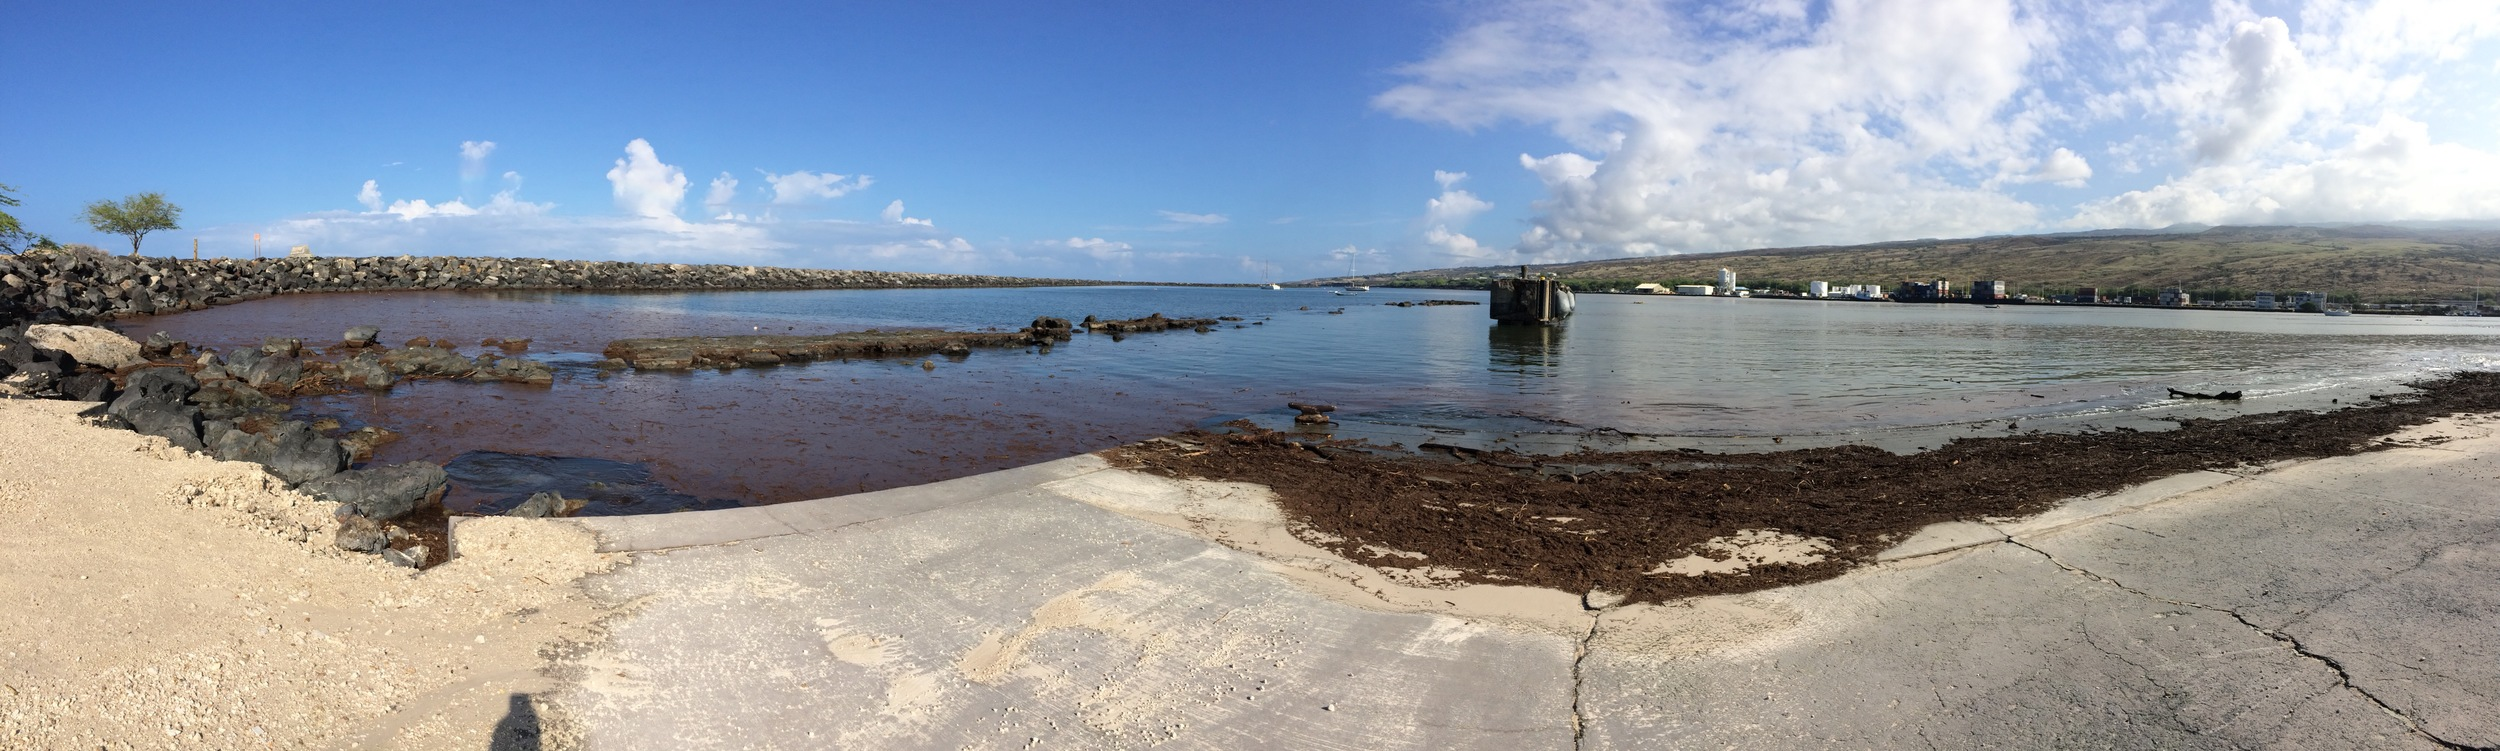 Panorama of post-fire debris covering Kawaihae Harbor.